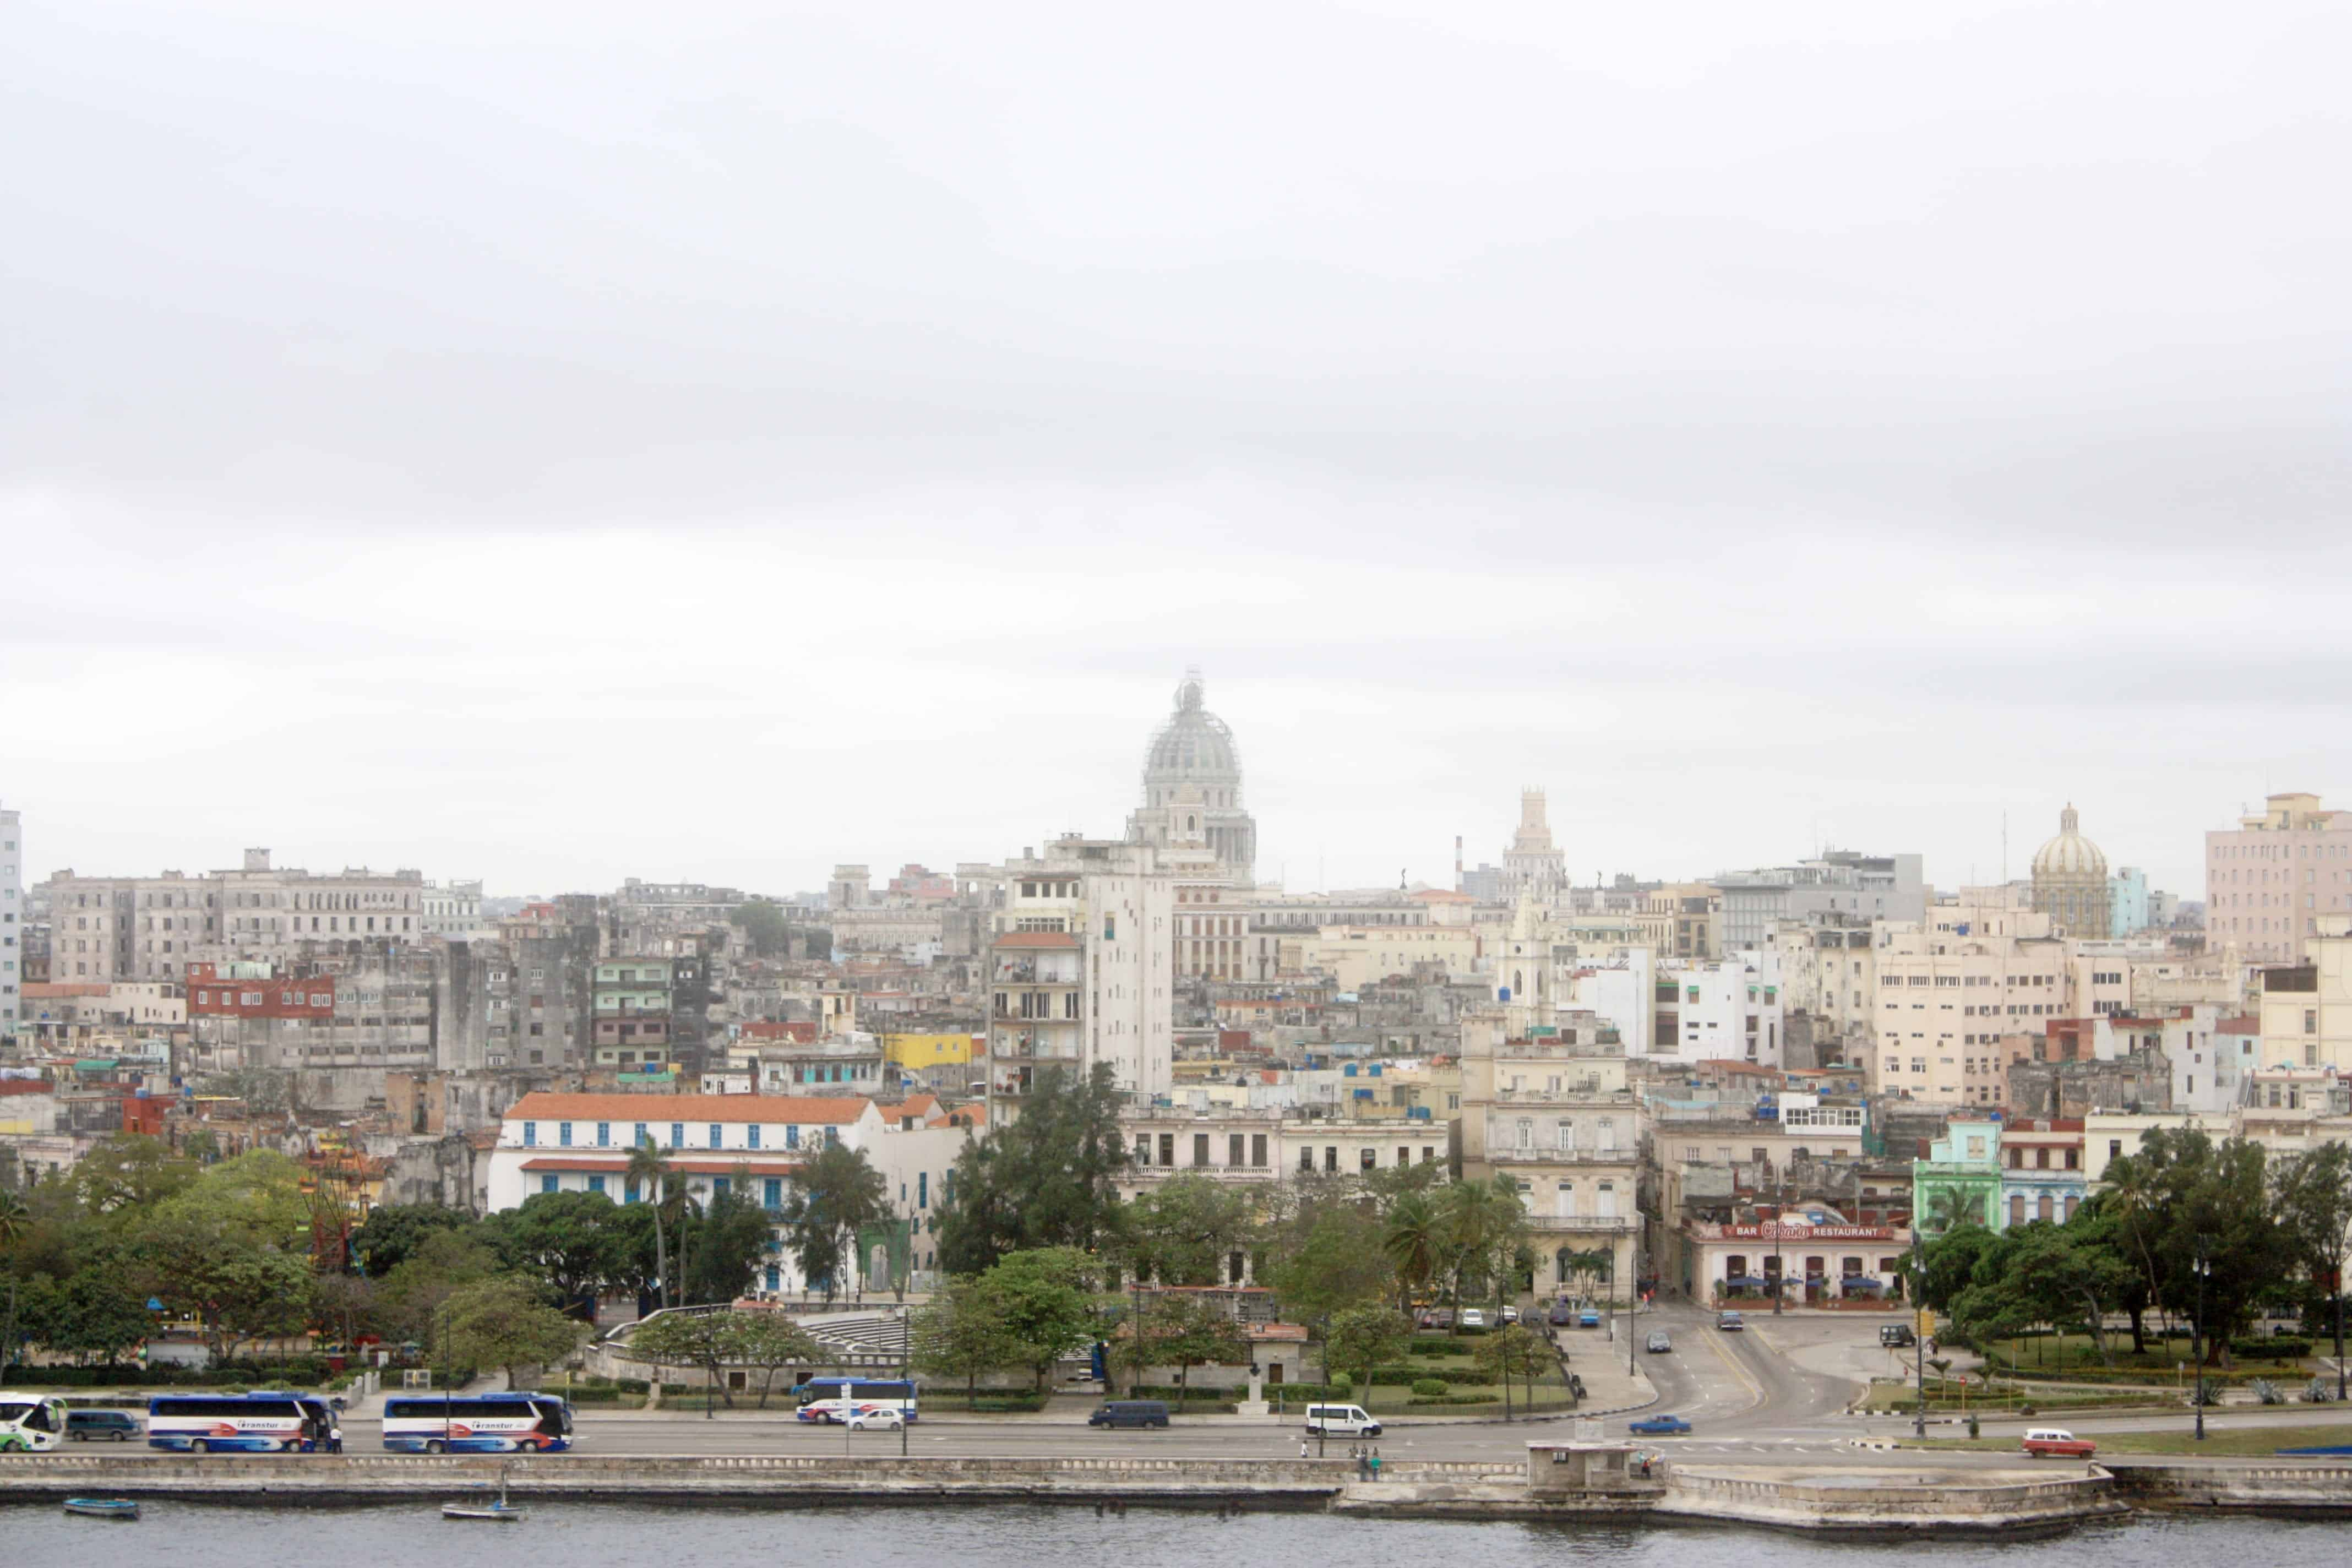 Historic Havana, home to the world's largest book fair, communism, and colonial buildings. / John Kapp